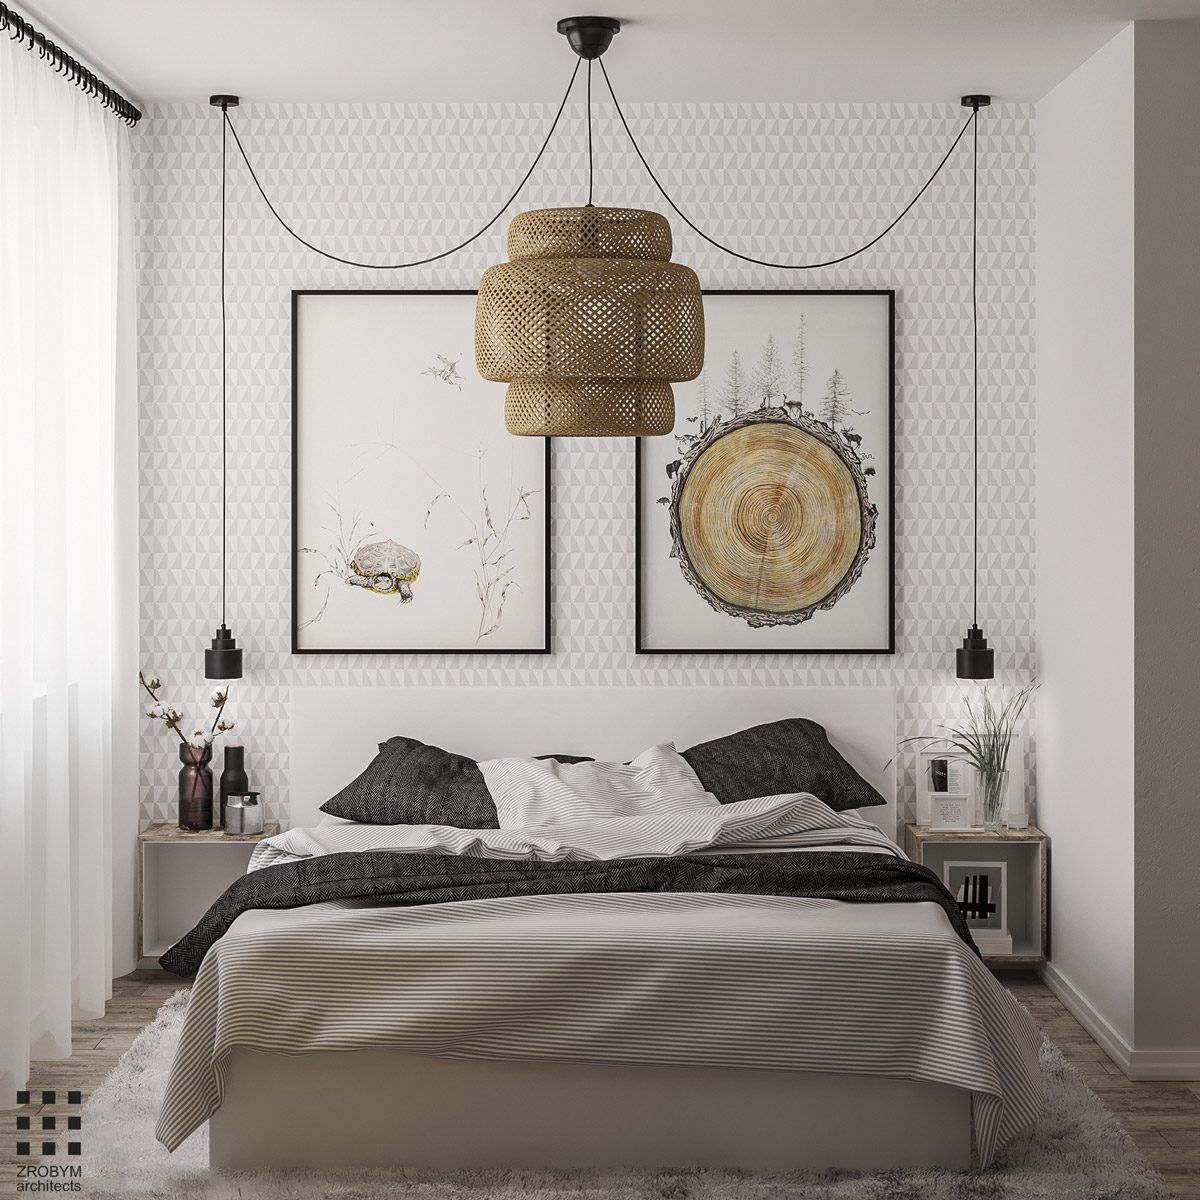 40 Inspirational Modern Bedrooms That Will Leave You Awed